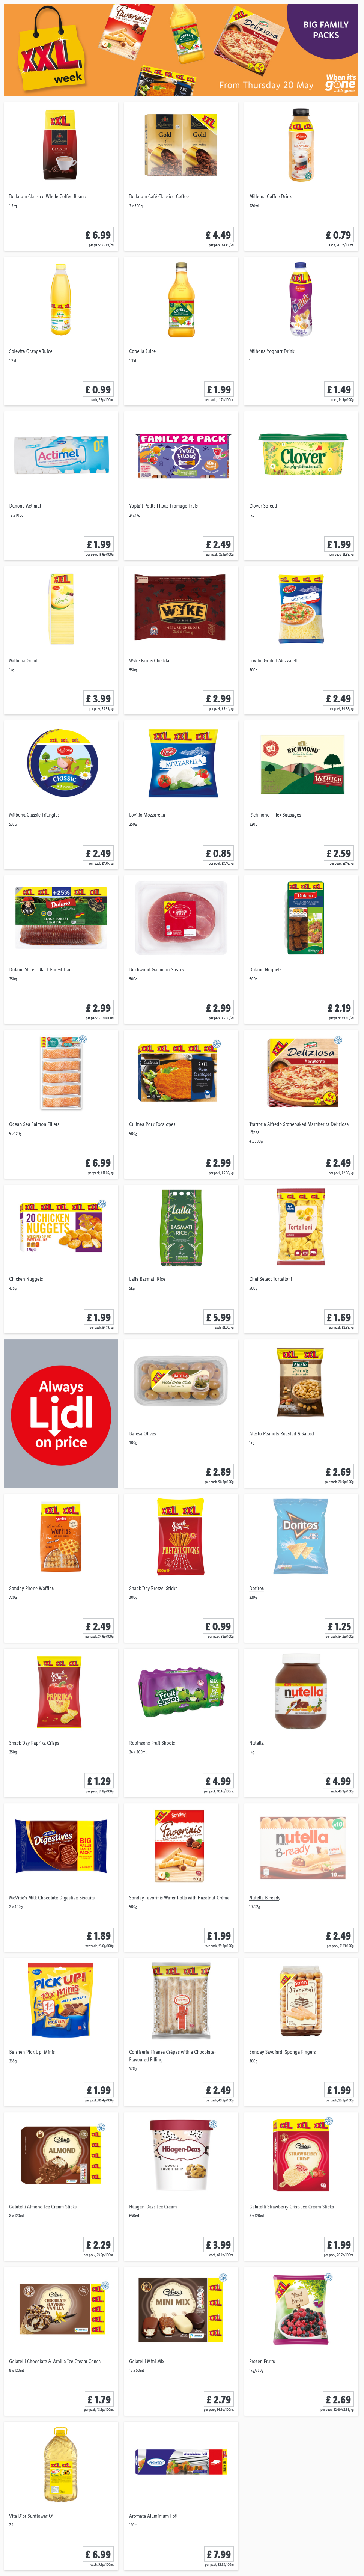 LIDL Offers this Thursday From 20th May 2021 LIDL XXL Week